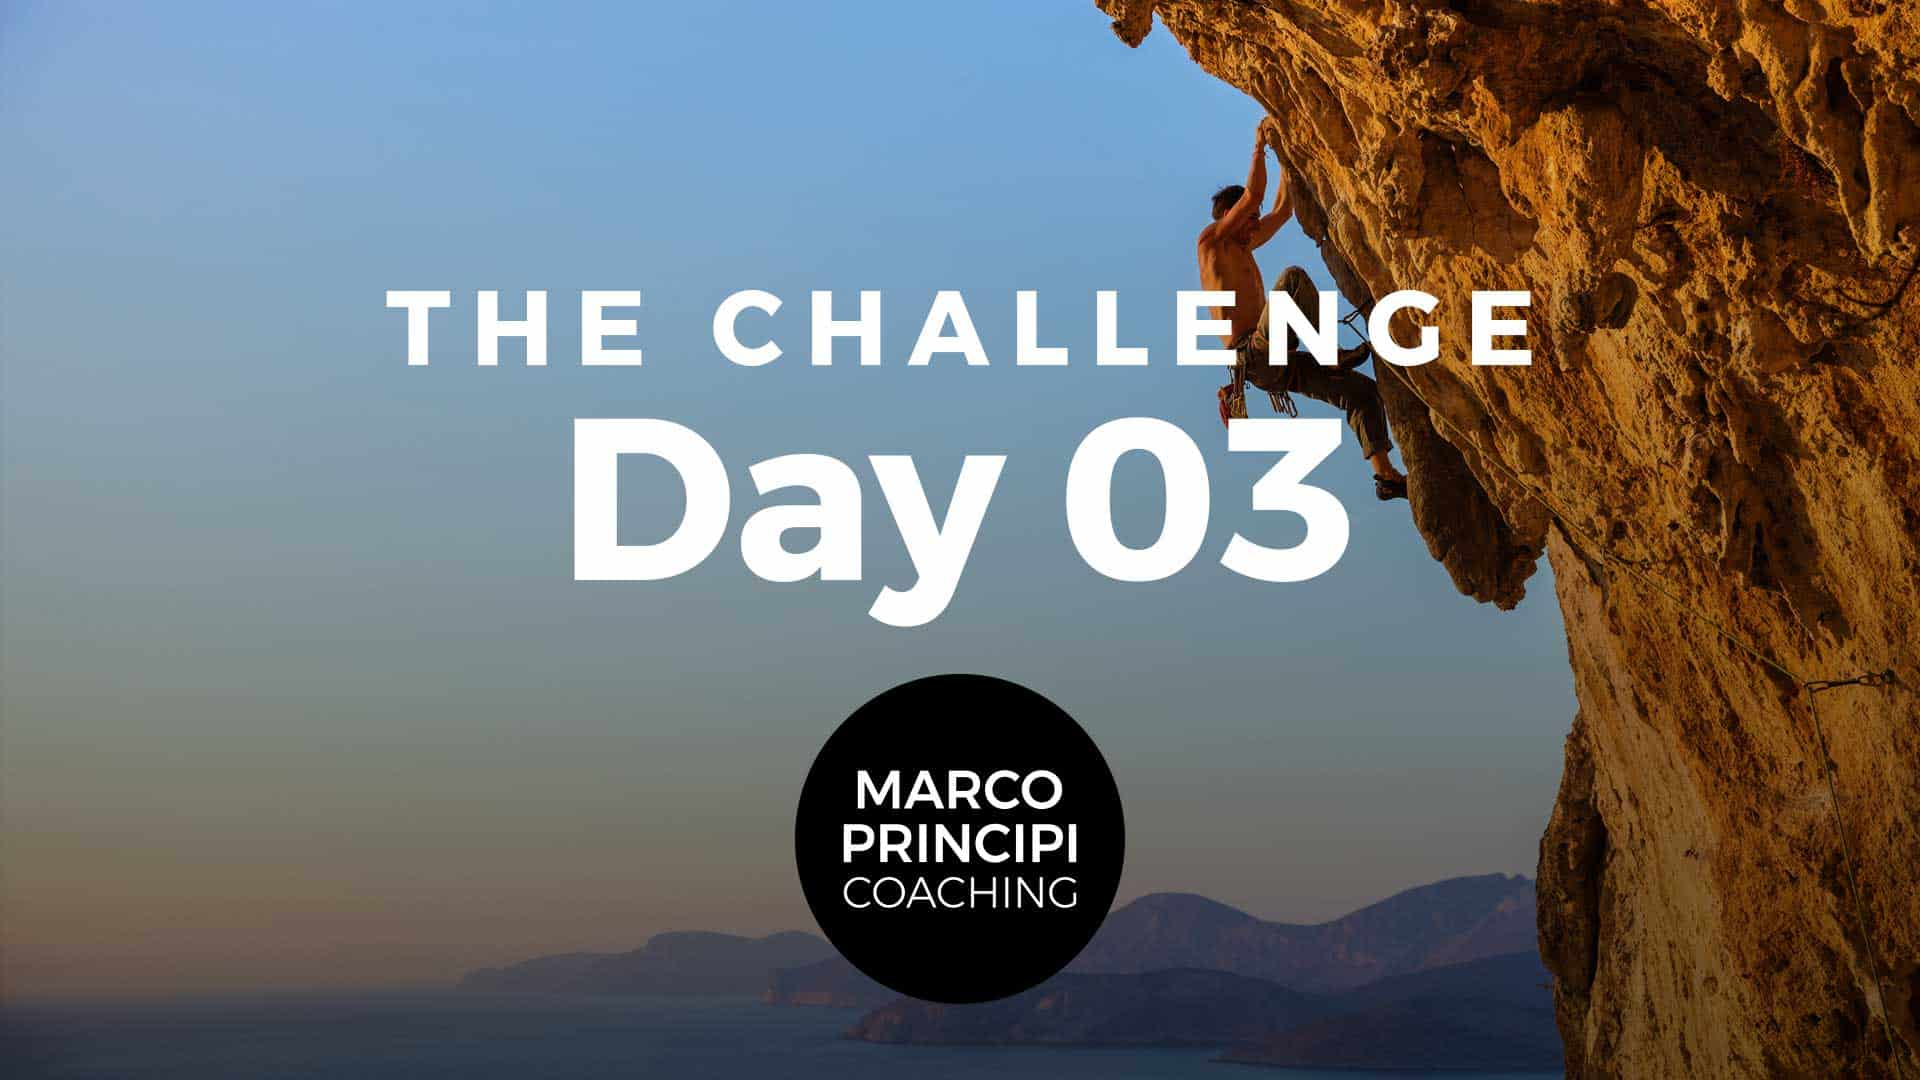 Marco Principi YT Cover The Challenge Day 003